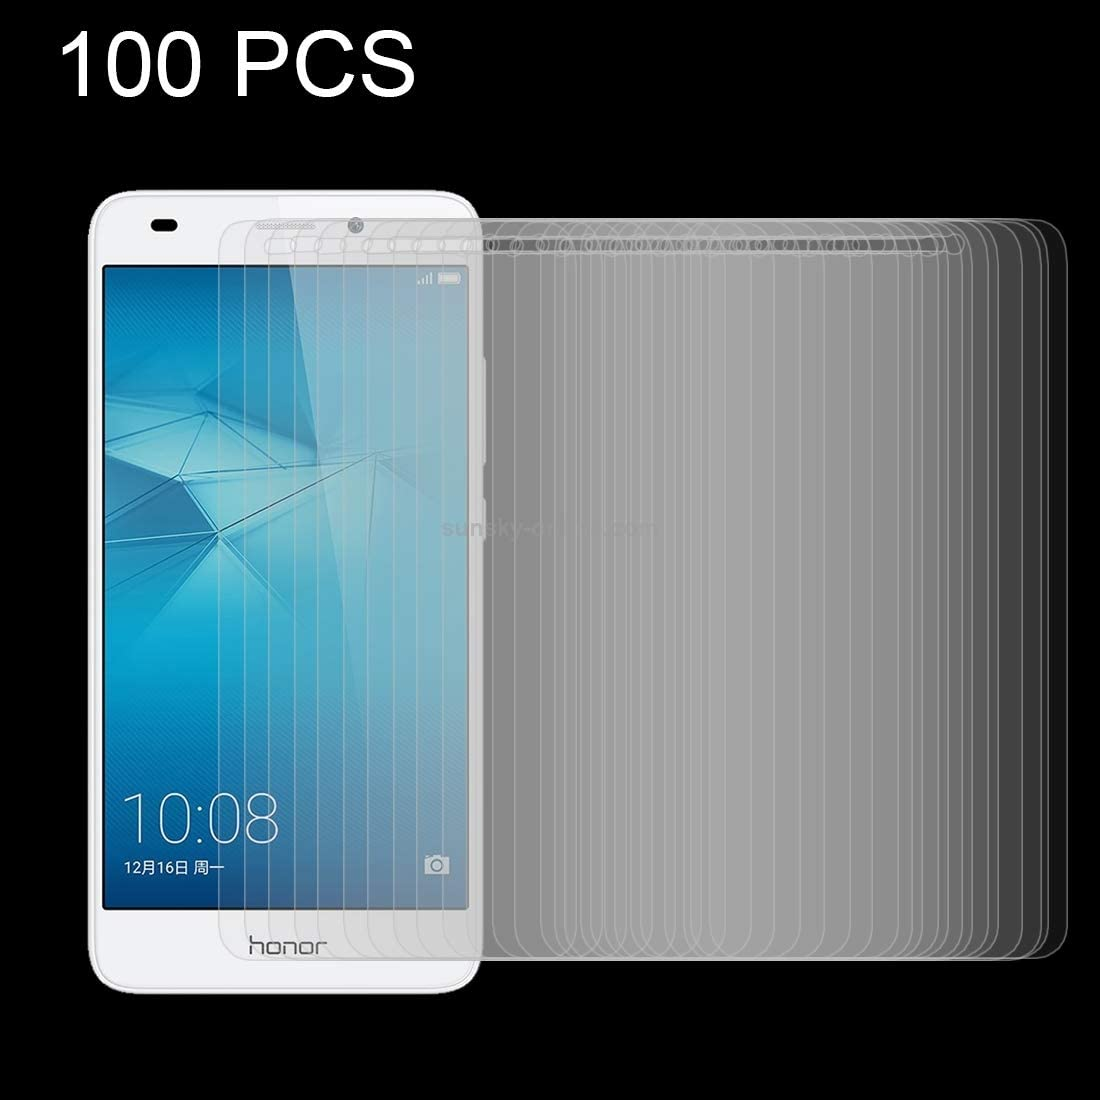 JUUANFDFINGD Cell Phones Screen Protectors 100 PCS for Huawei Honor 5c 0.26mm 9H Surface Hardness Explosion-Proof Tempered Glass Screen Film